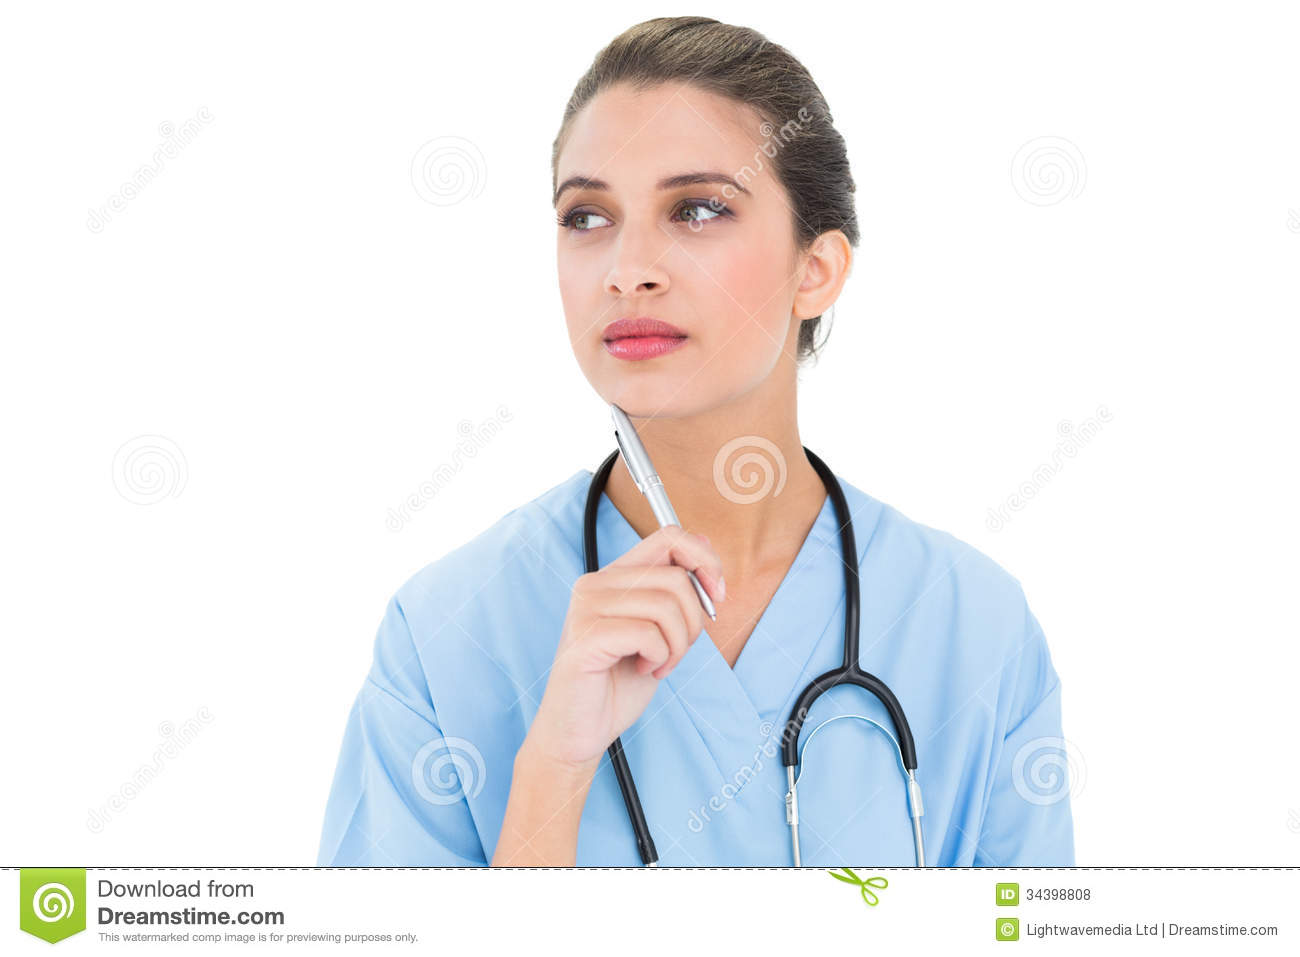 Thoughtful Brown Haired Nurse In Blue Scrubs Holding A Pen